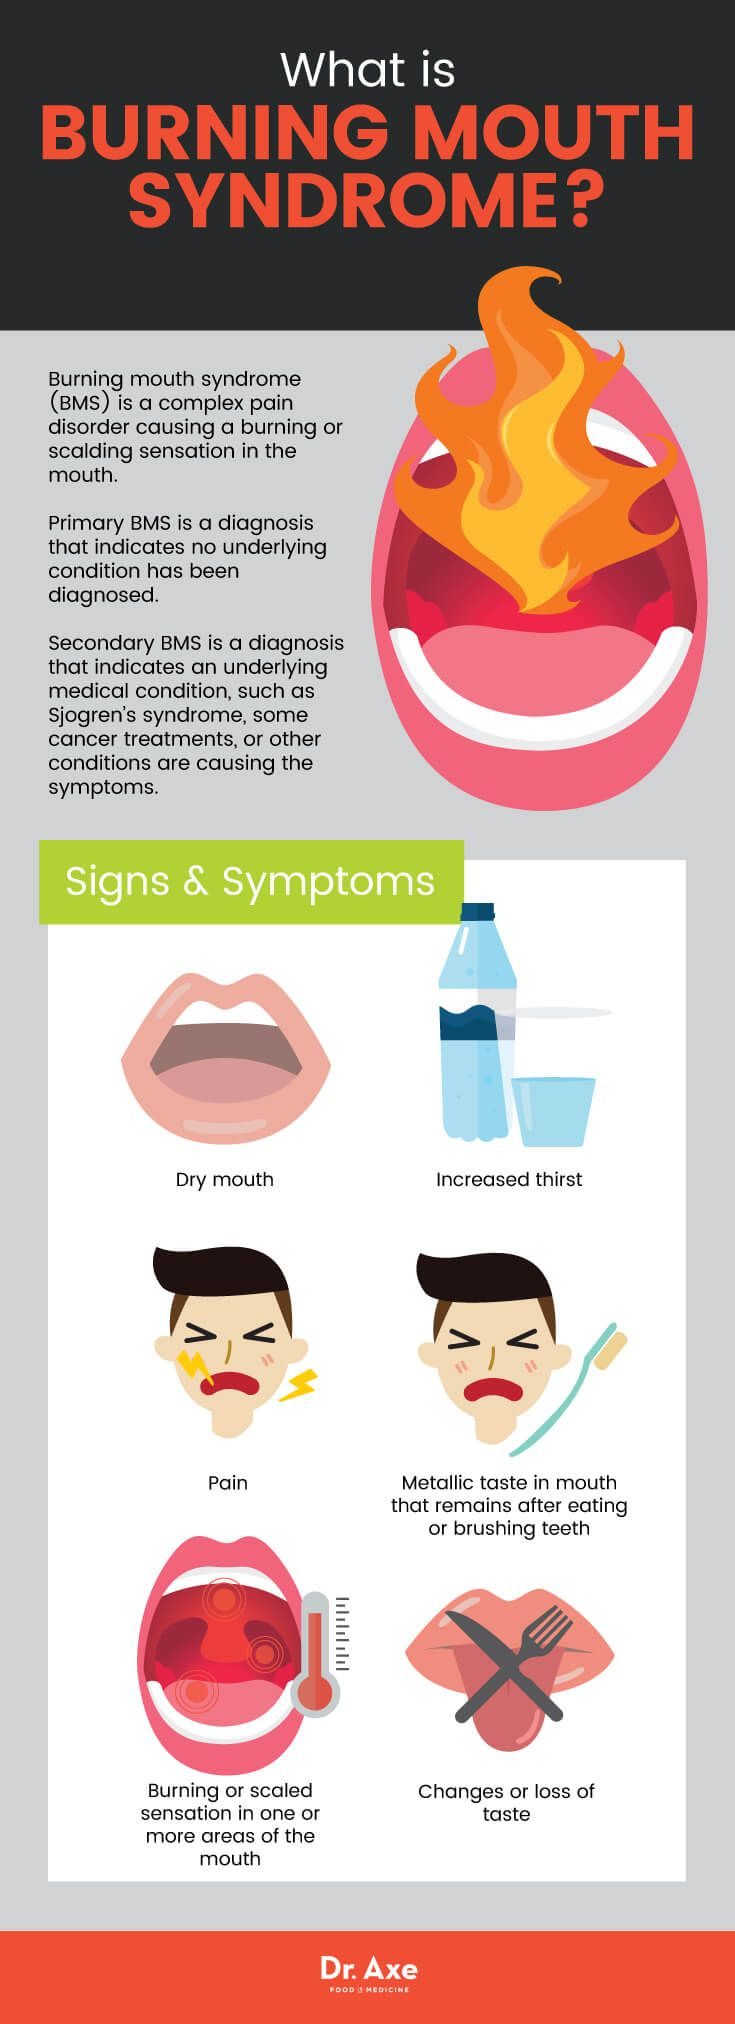 9 Ways to Treat Burning Mouth Syndrome | Dr  Axe Articles